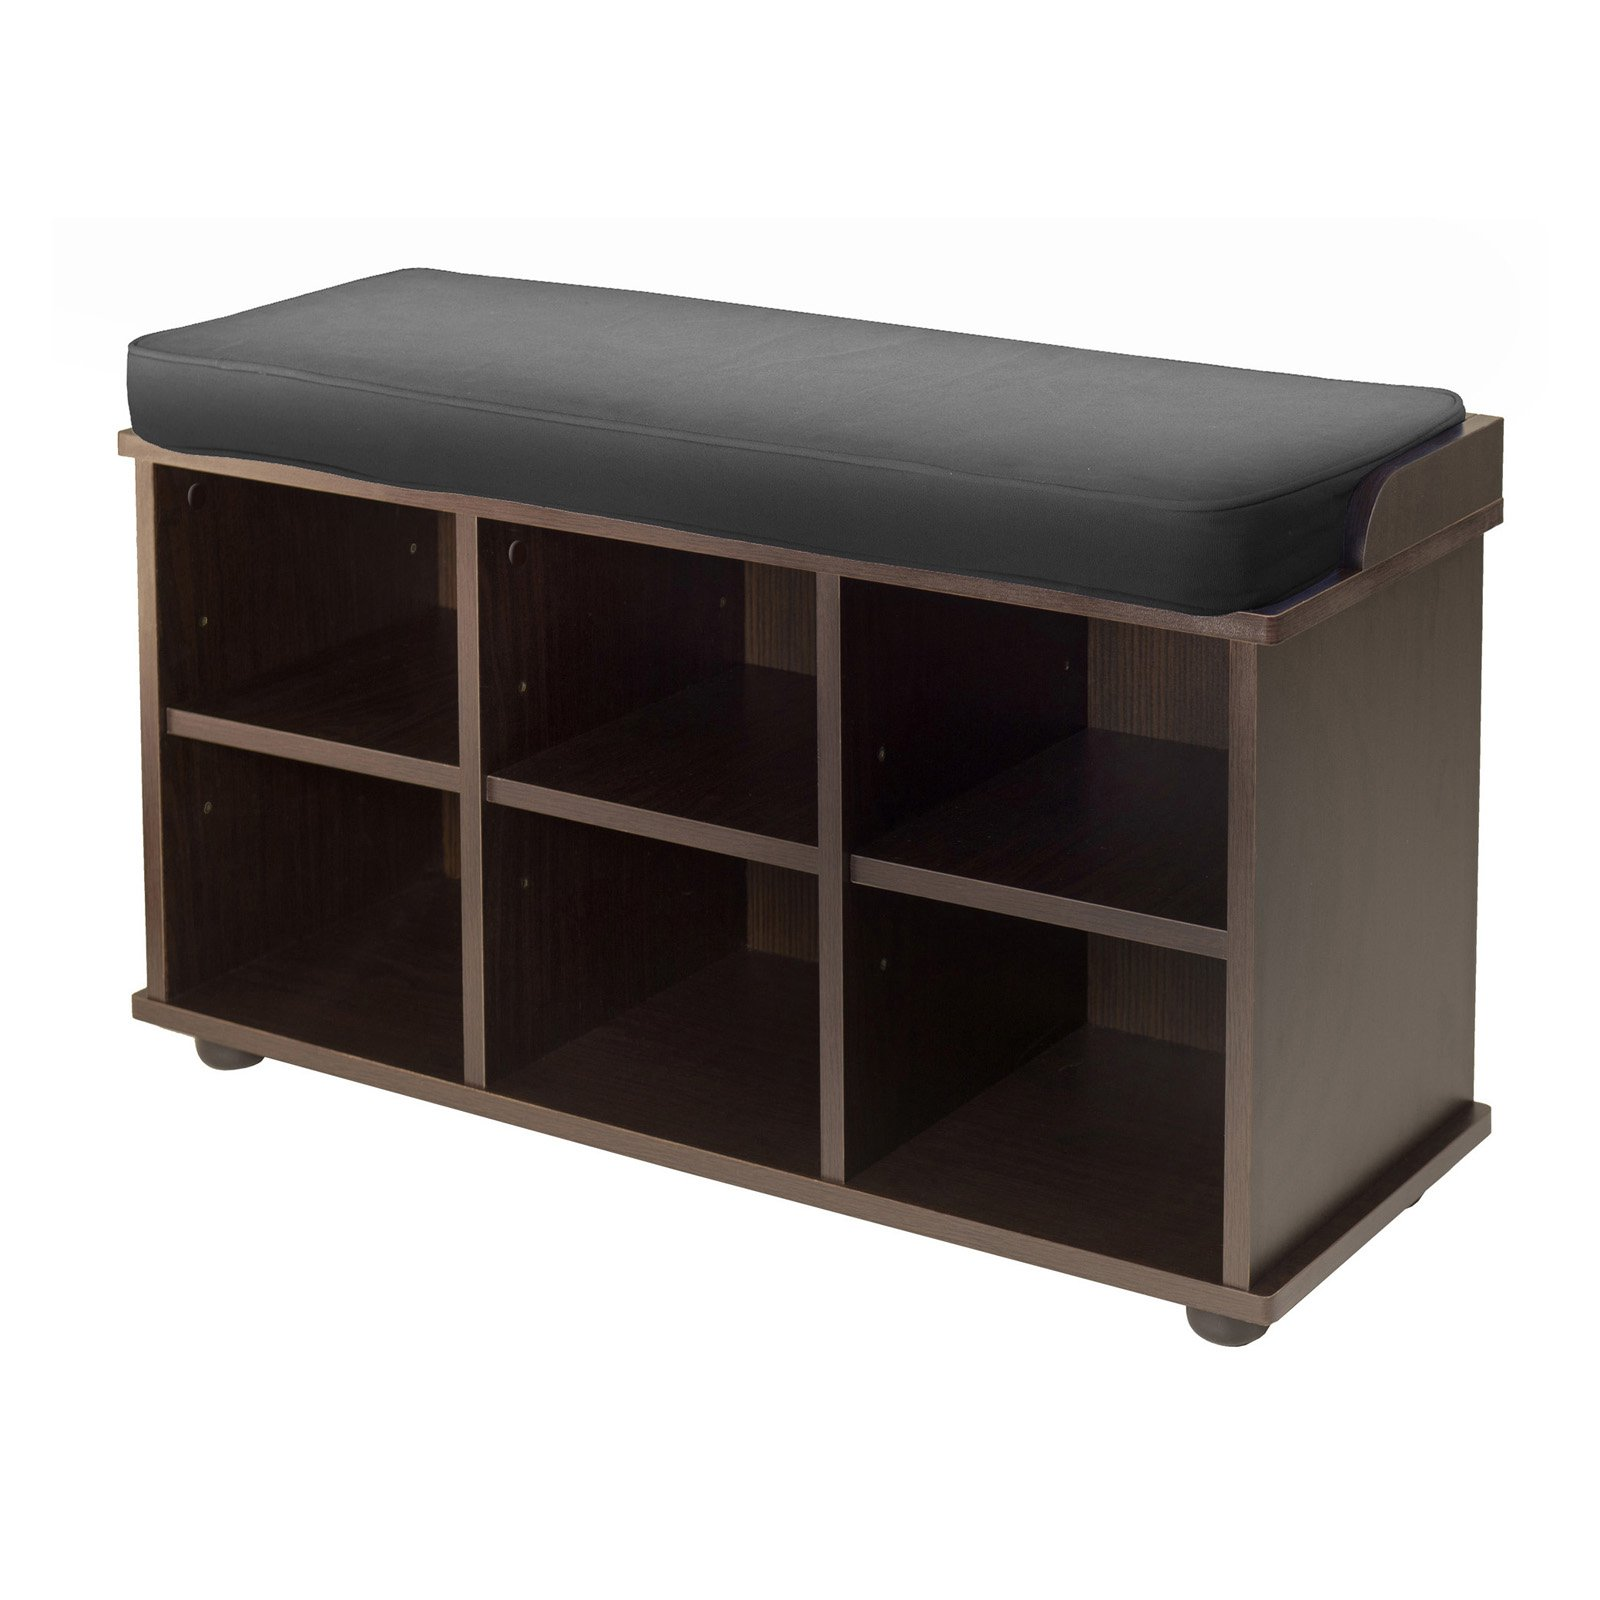 Townsend Bench with Black Cushion Seat, Expresso